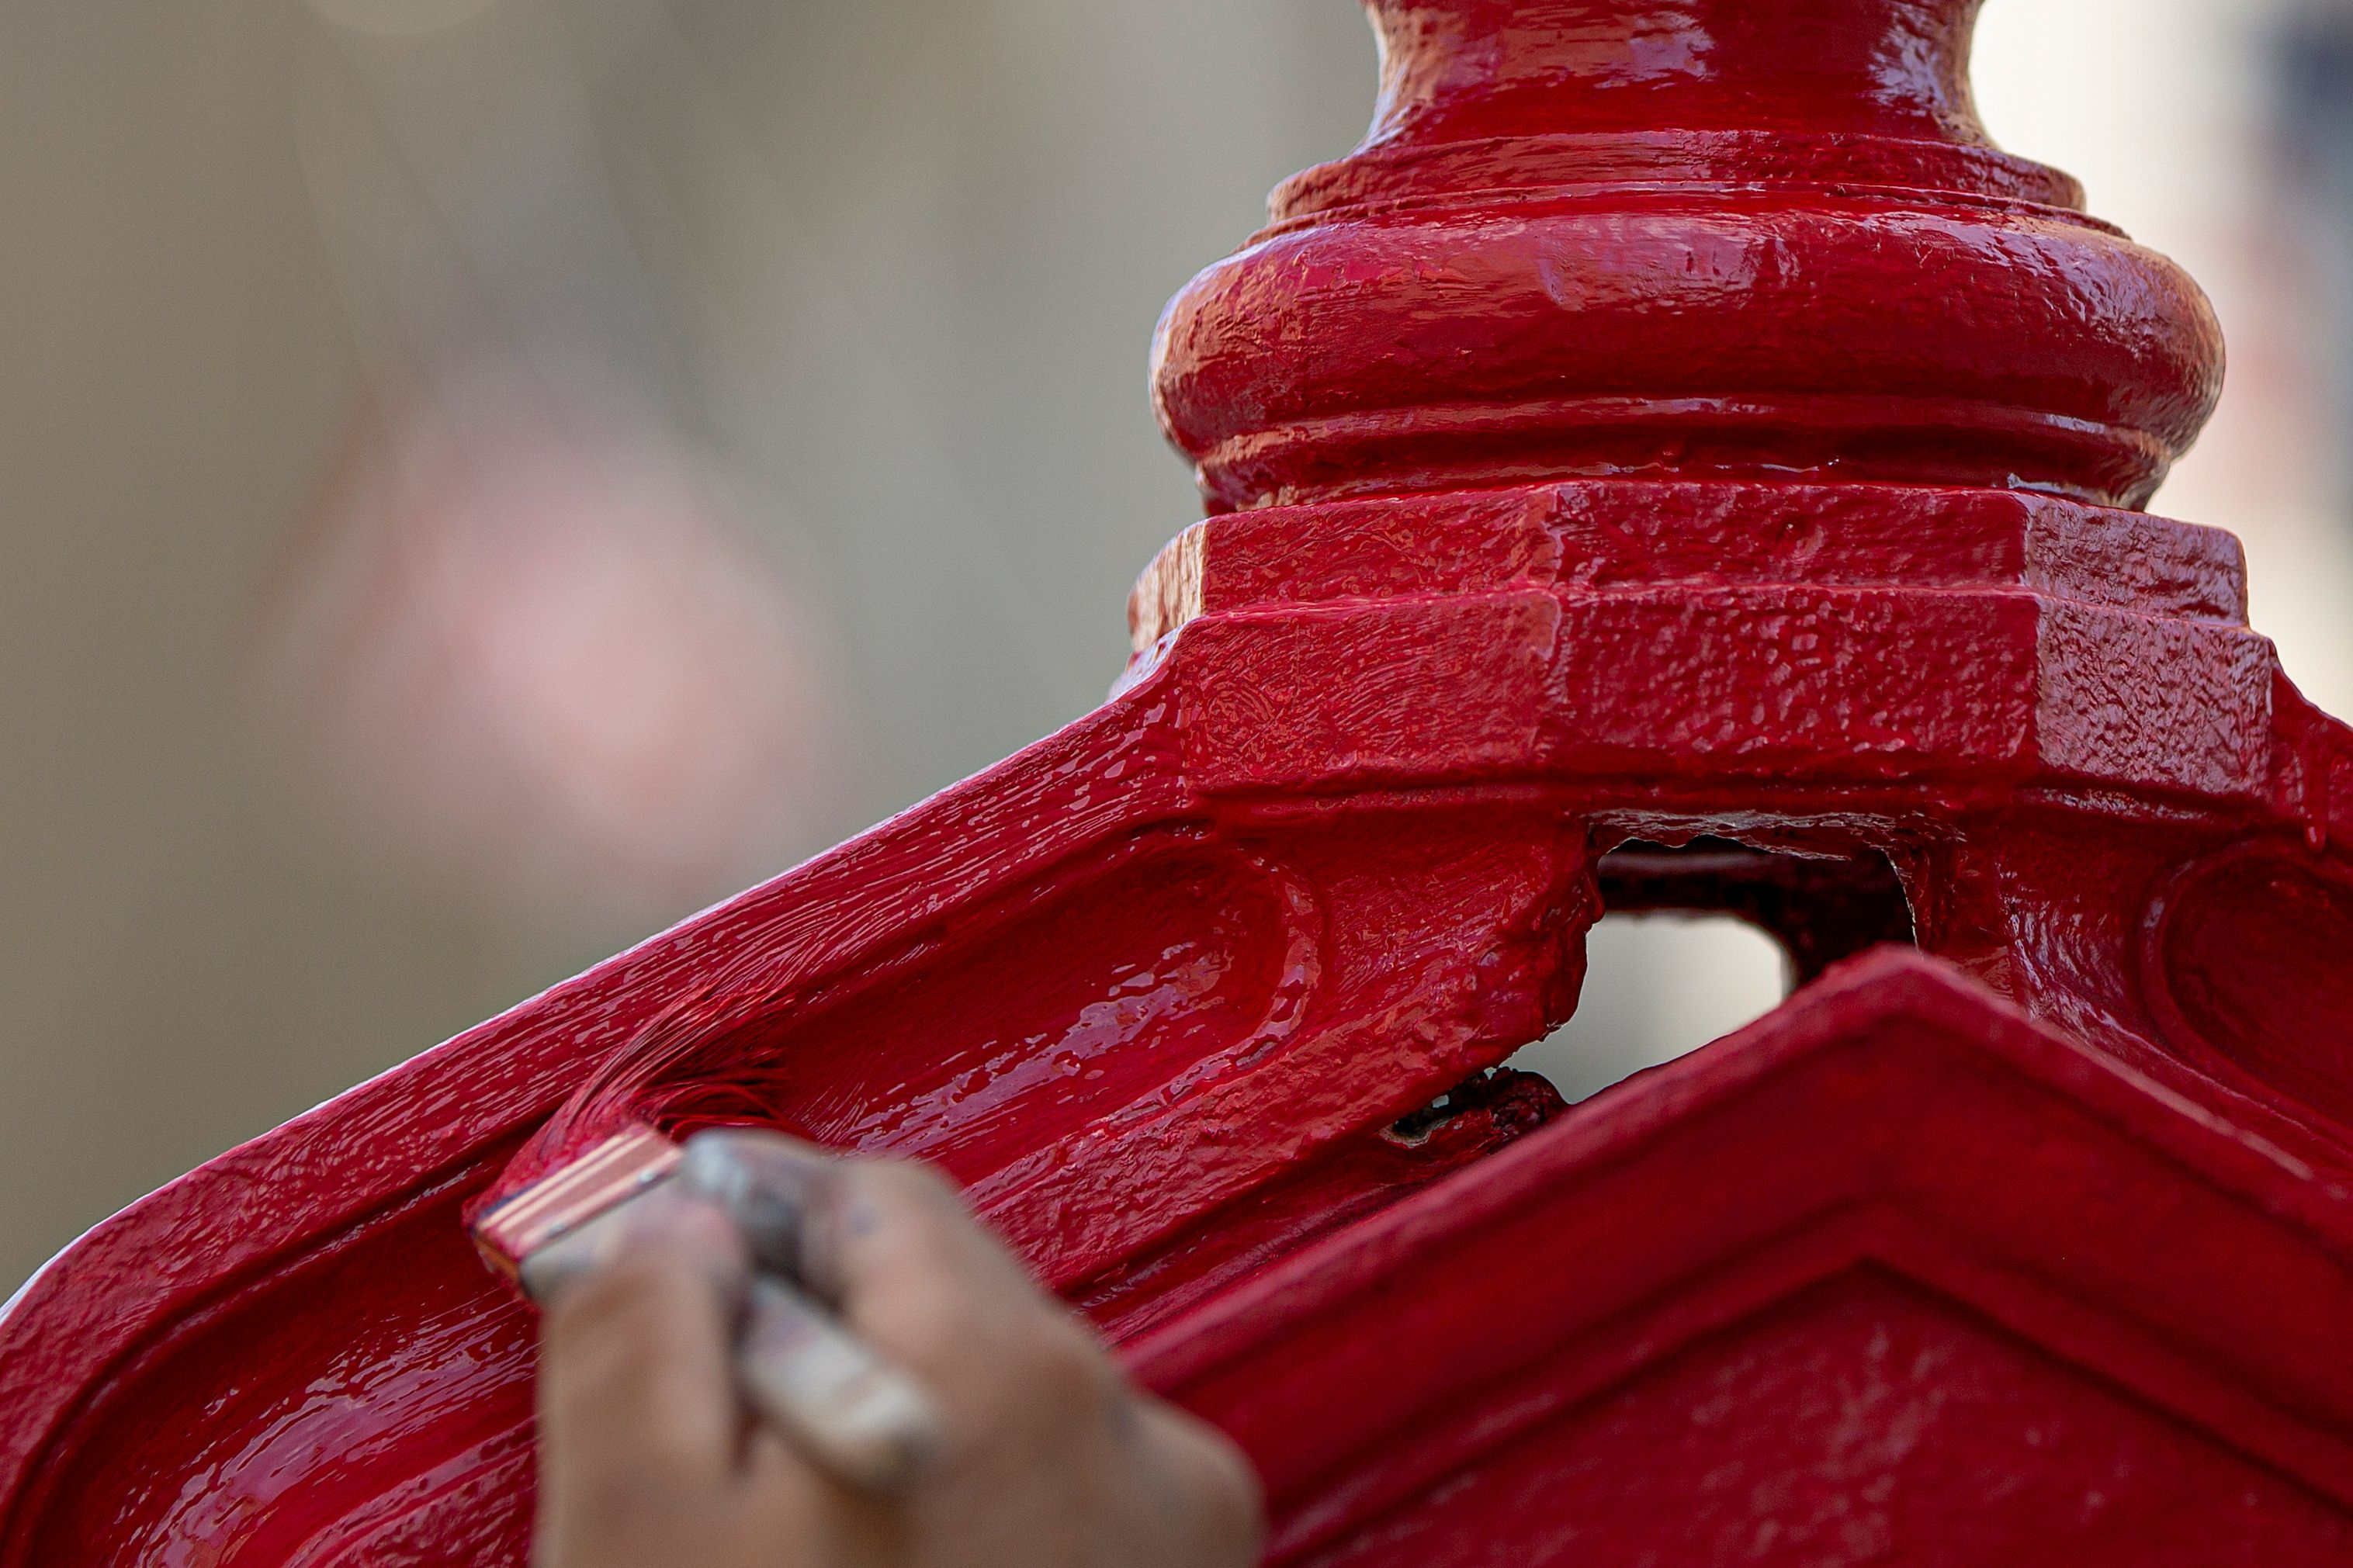 A hand is shown painting an old call box for emergency responders with red paint.